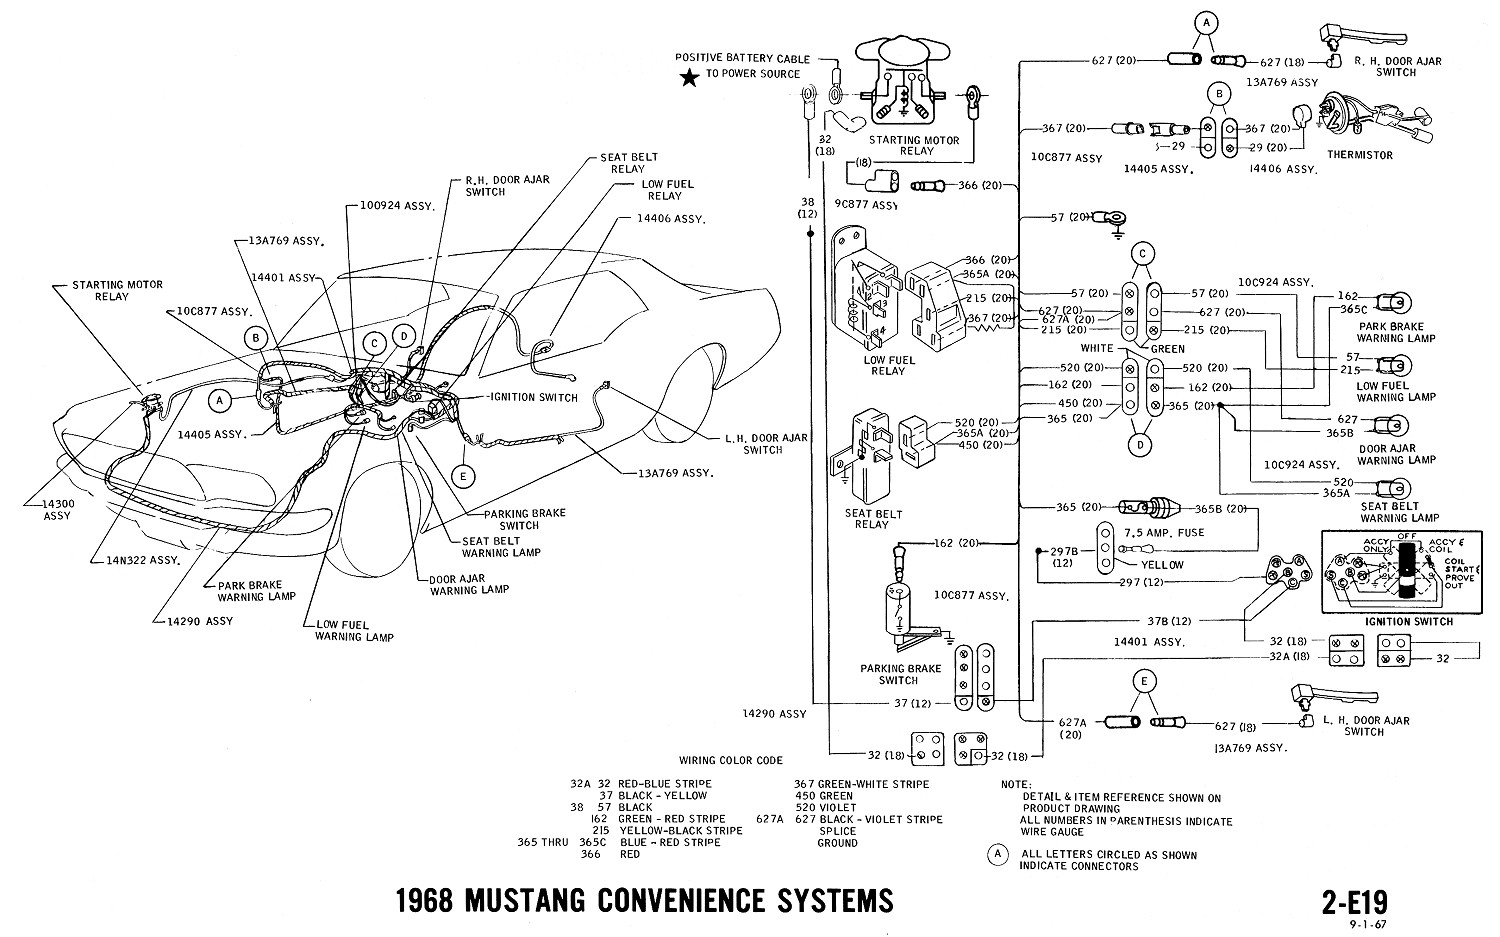 hight resolution of 69 mustang wiring harness diagram blog wiring diagram 1969 mustang painless wiring harness 1969 mustang wiring harness